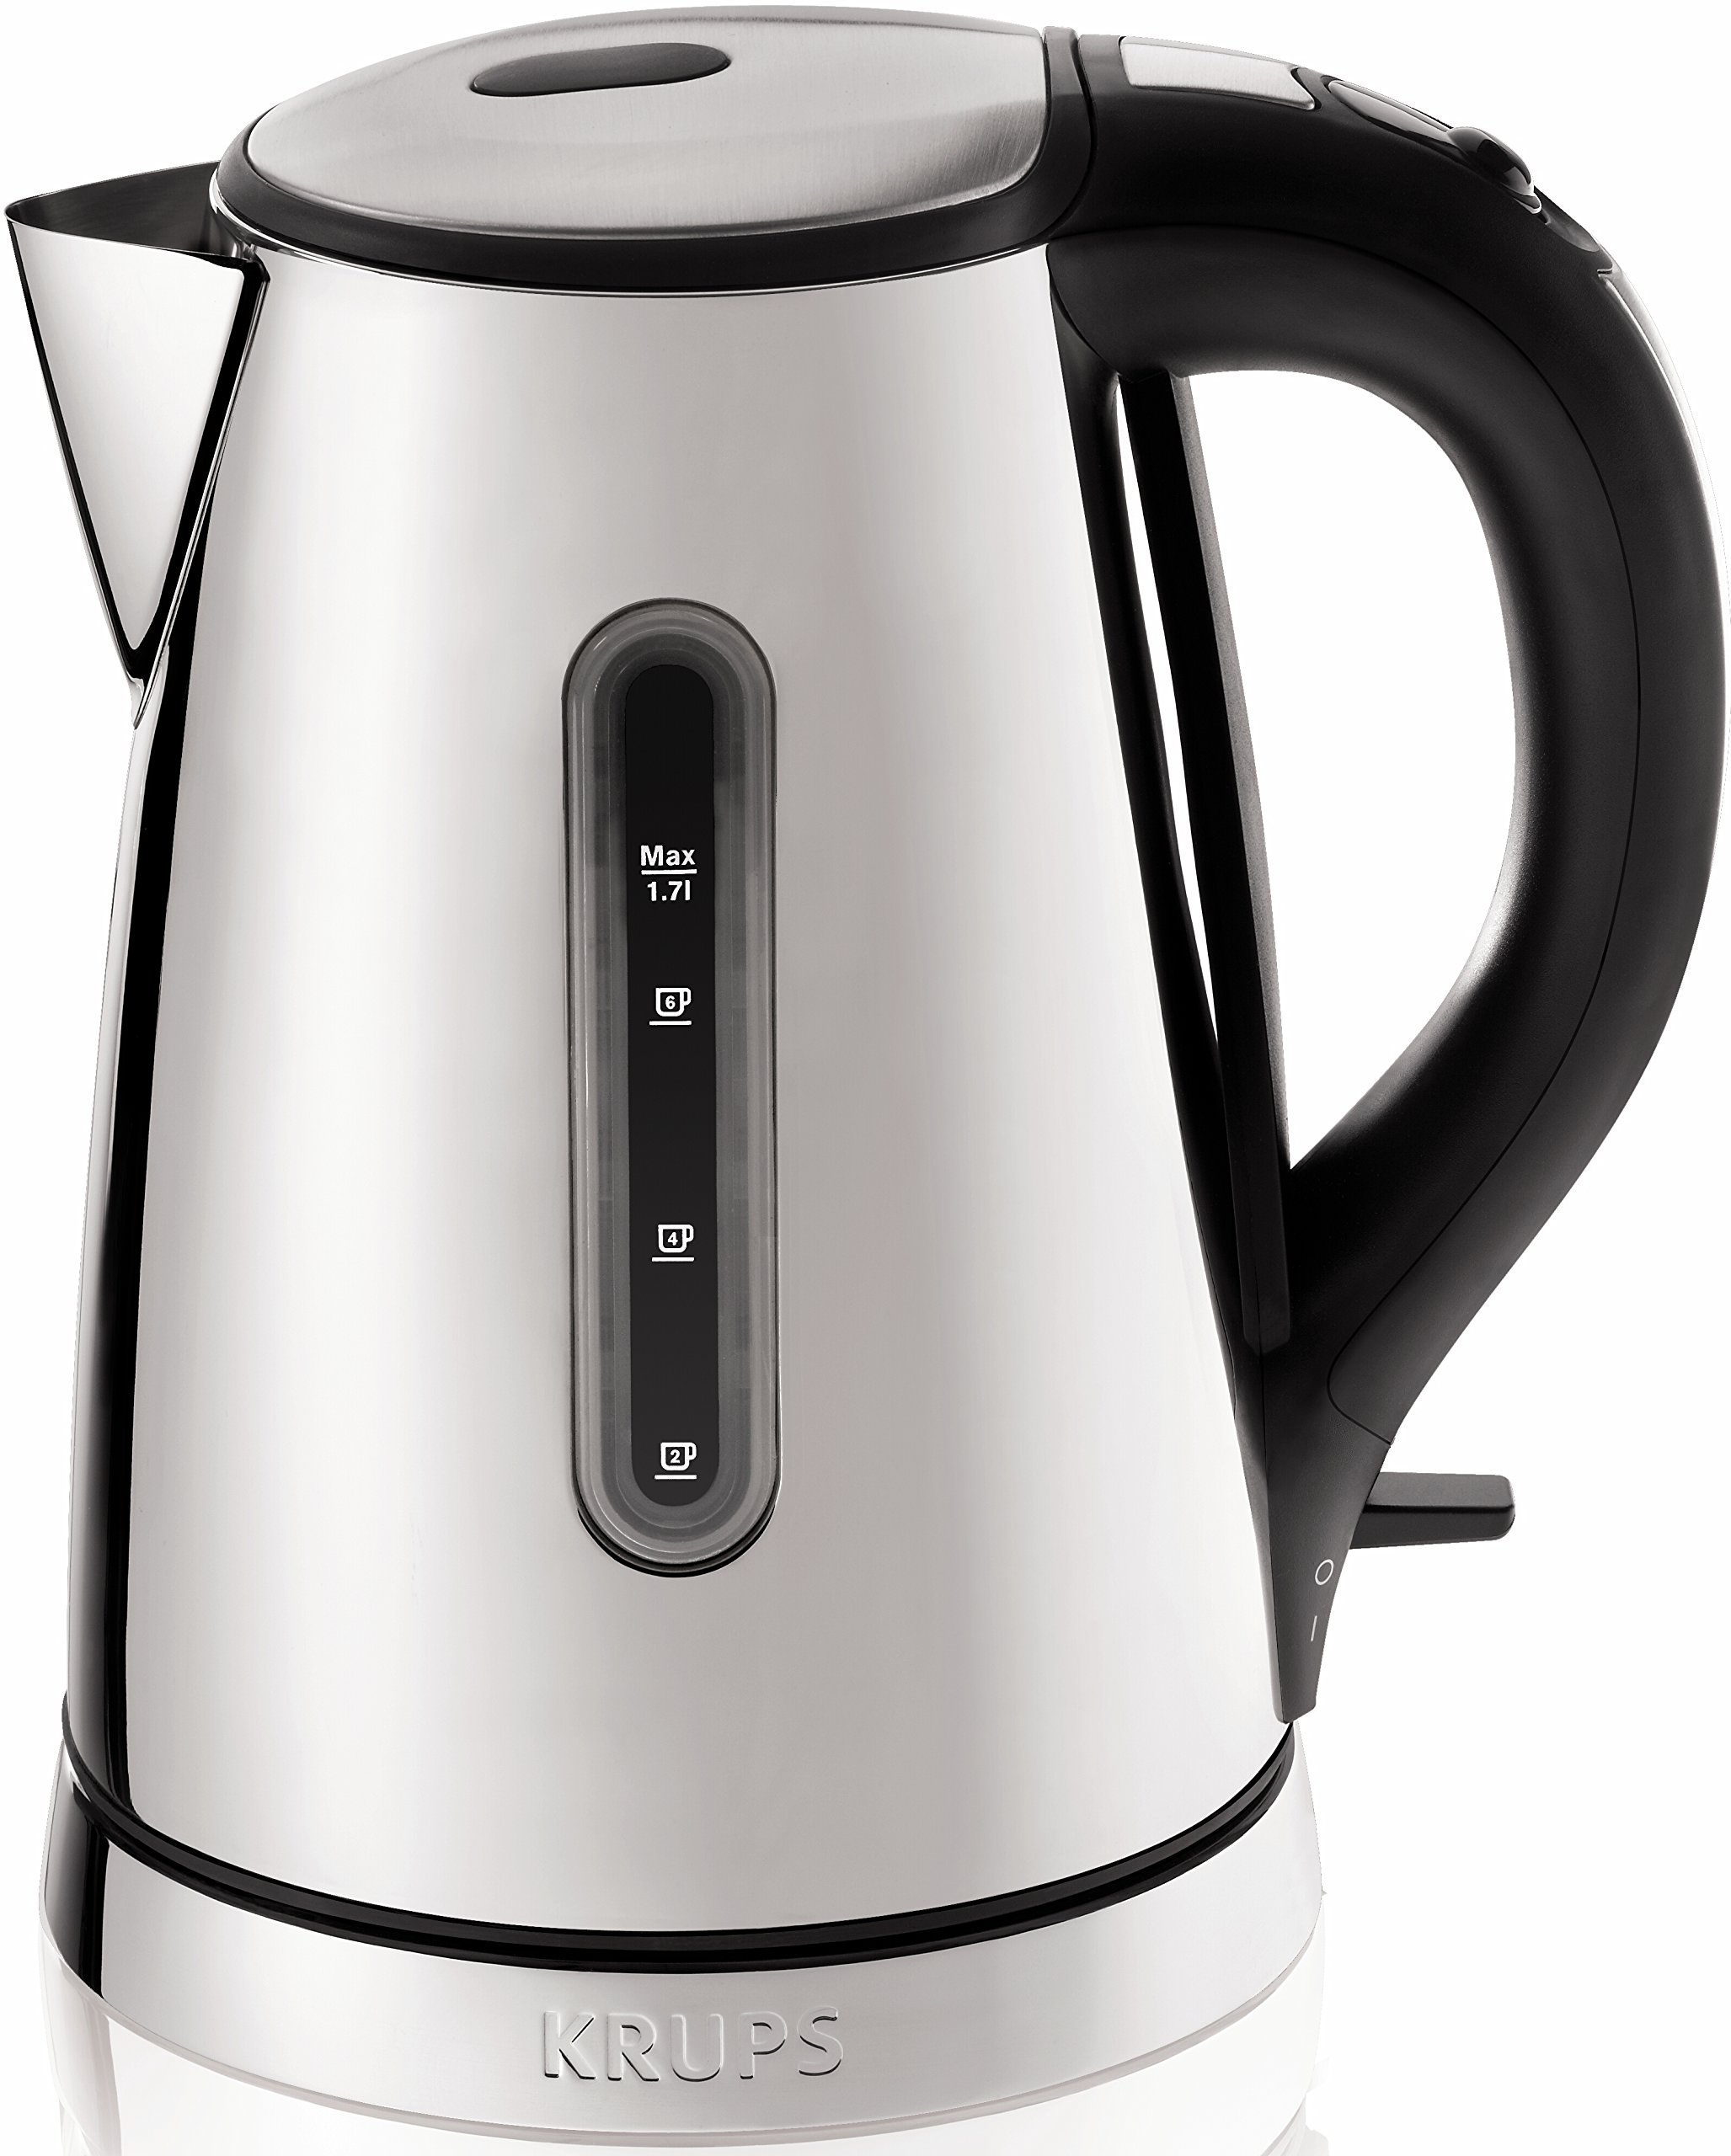 KRUPS BW730D Breakfast Set Electric Kettle with Brushed and Chrome Stainless Steel Housing, 1.7-Liter, Silver by KRUPS